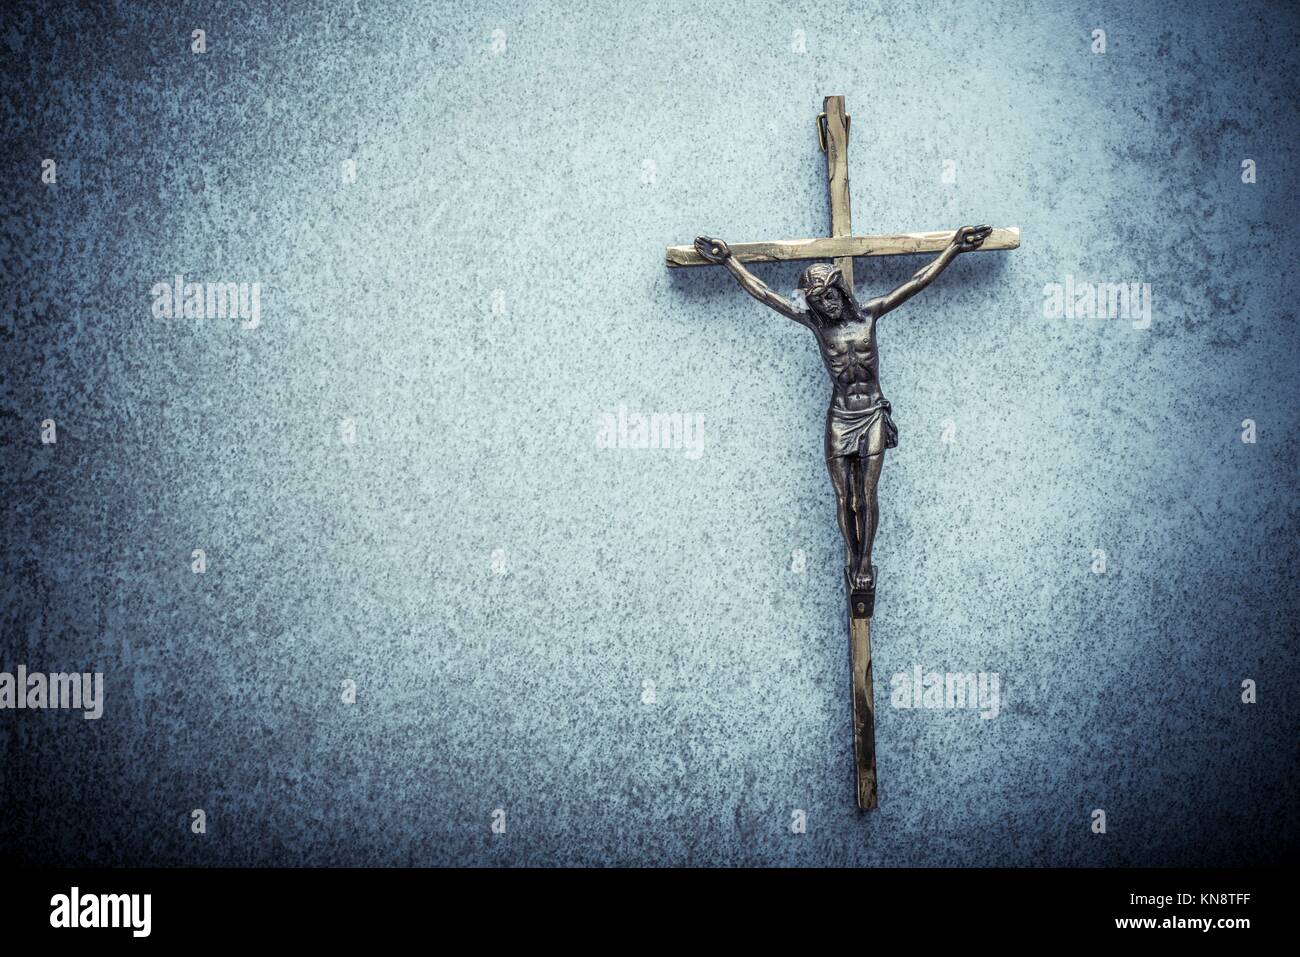 Crucifix of Jesus on the cross with stone background. Symbol of christian religion and belief. Image composed with - Stock Image